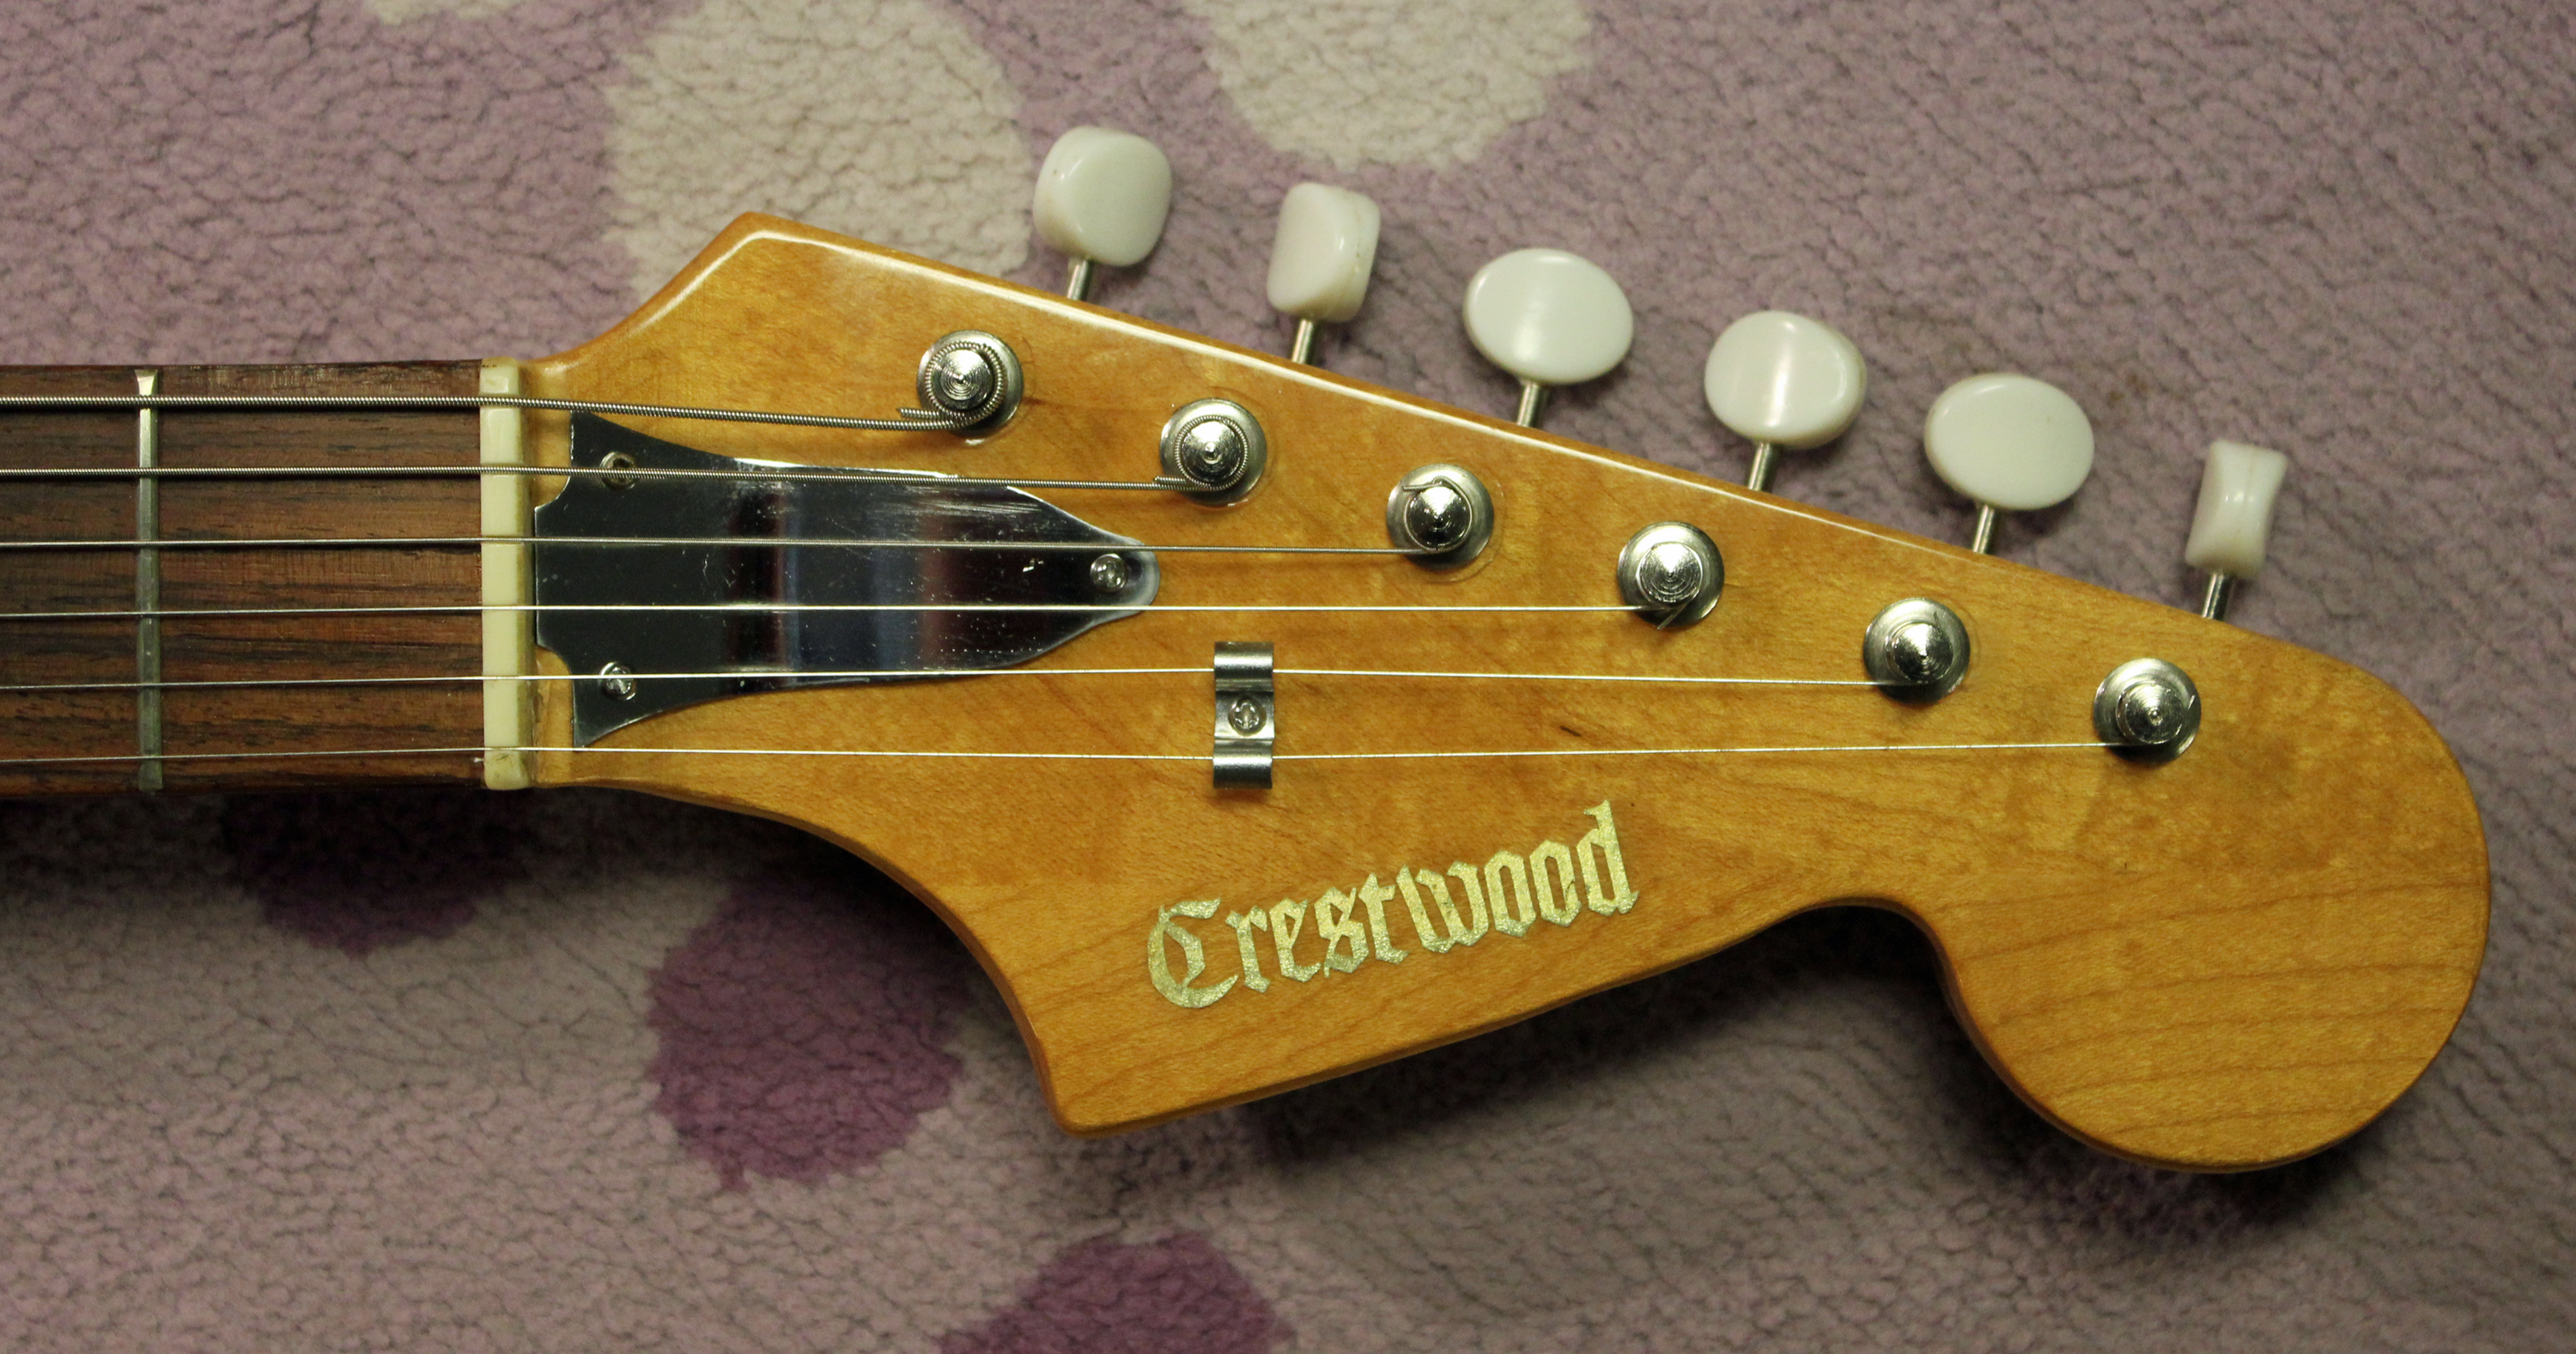 That Crestwood name was used by La Playa Distributing and there were many Crestwood  guitars to be found during the 60s. Heck, even today there are Crestwood ...